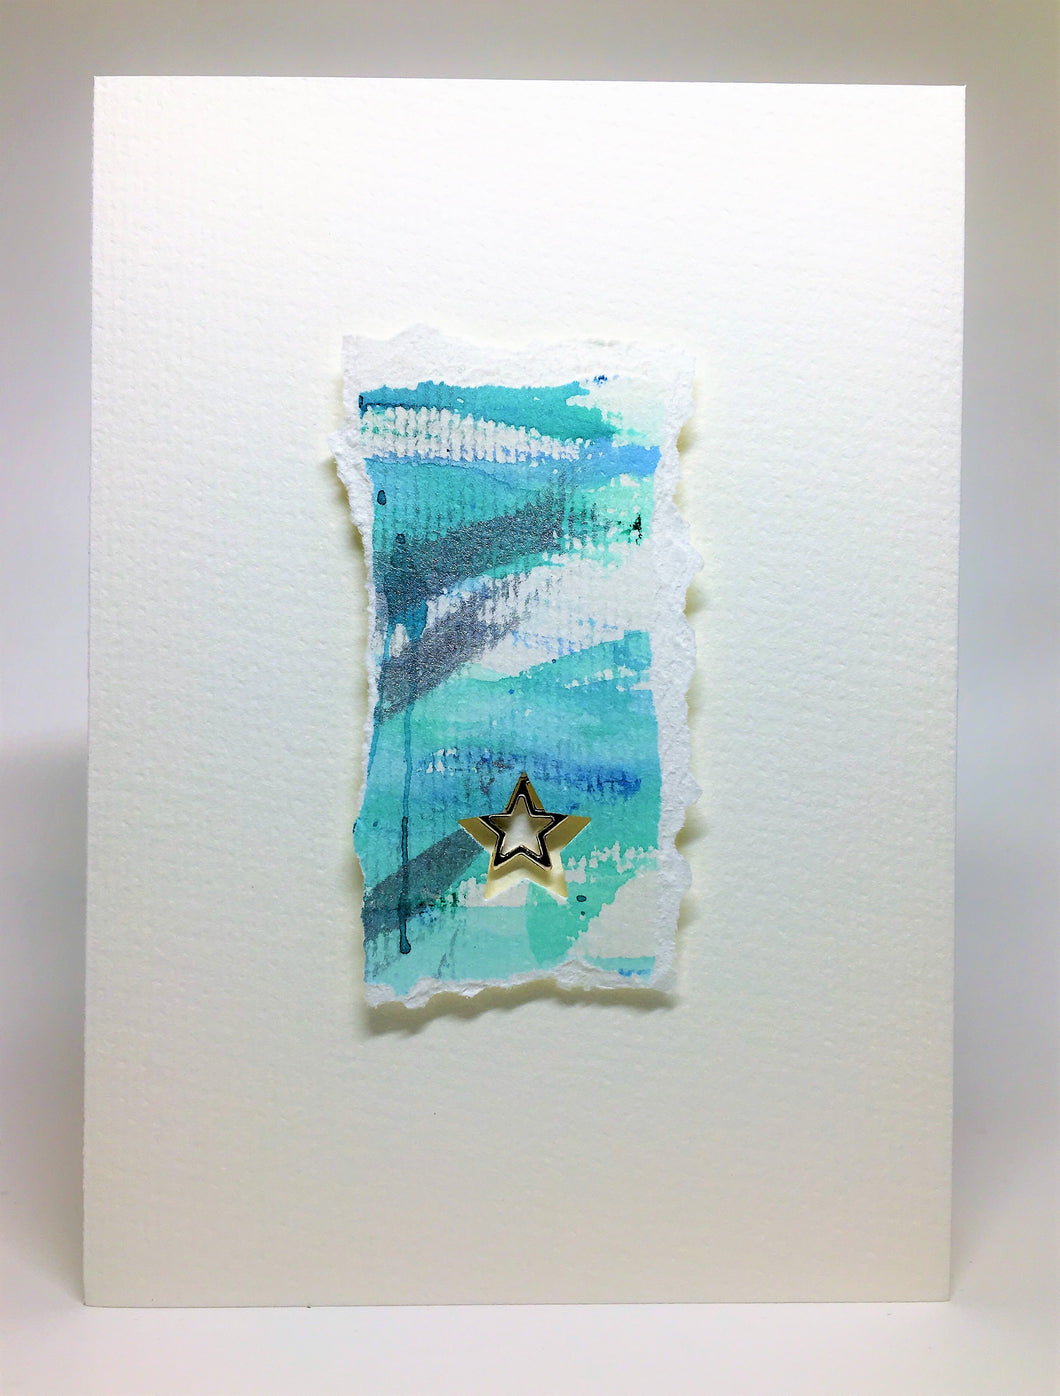 Original Handcrafted Christmas Card - Star Collection - Jade and Silver Abstract with Star - eDgE dEsiGn London